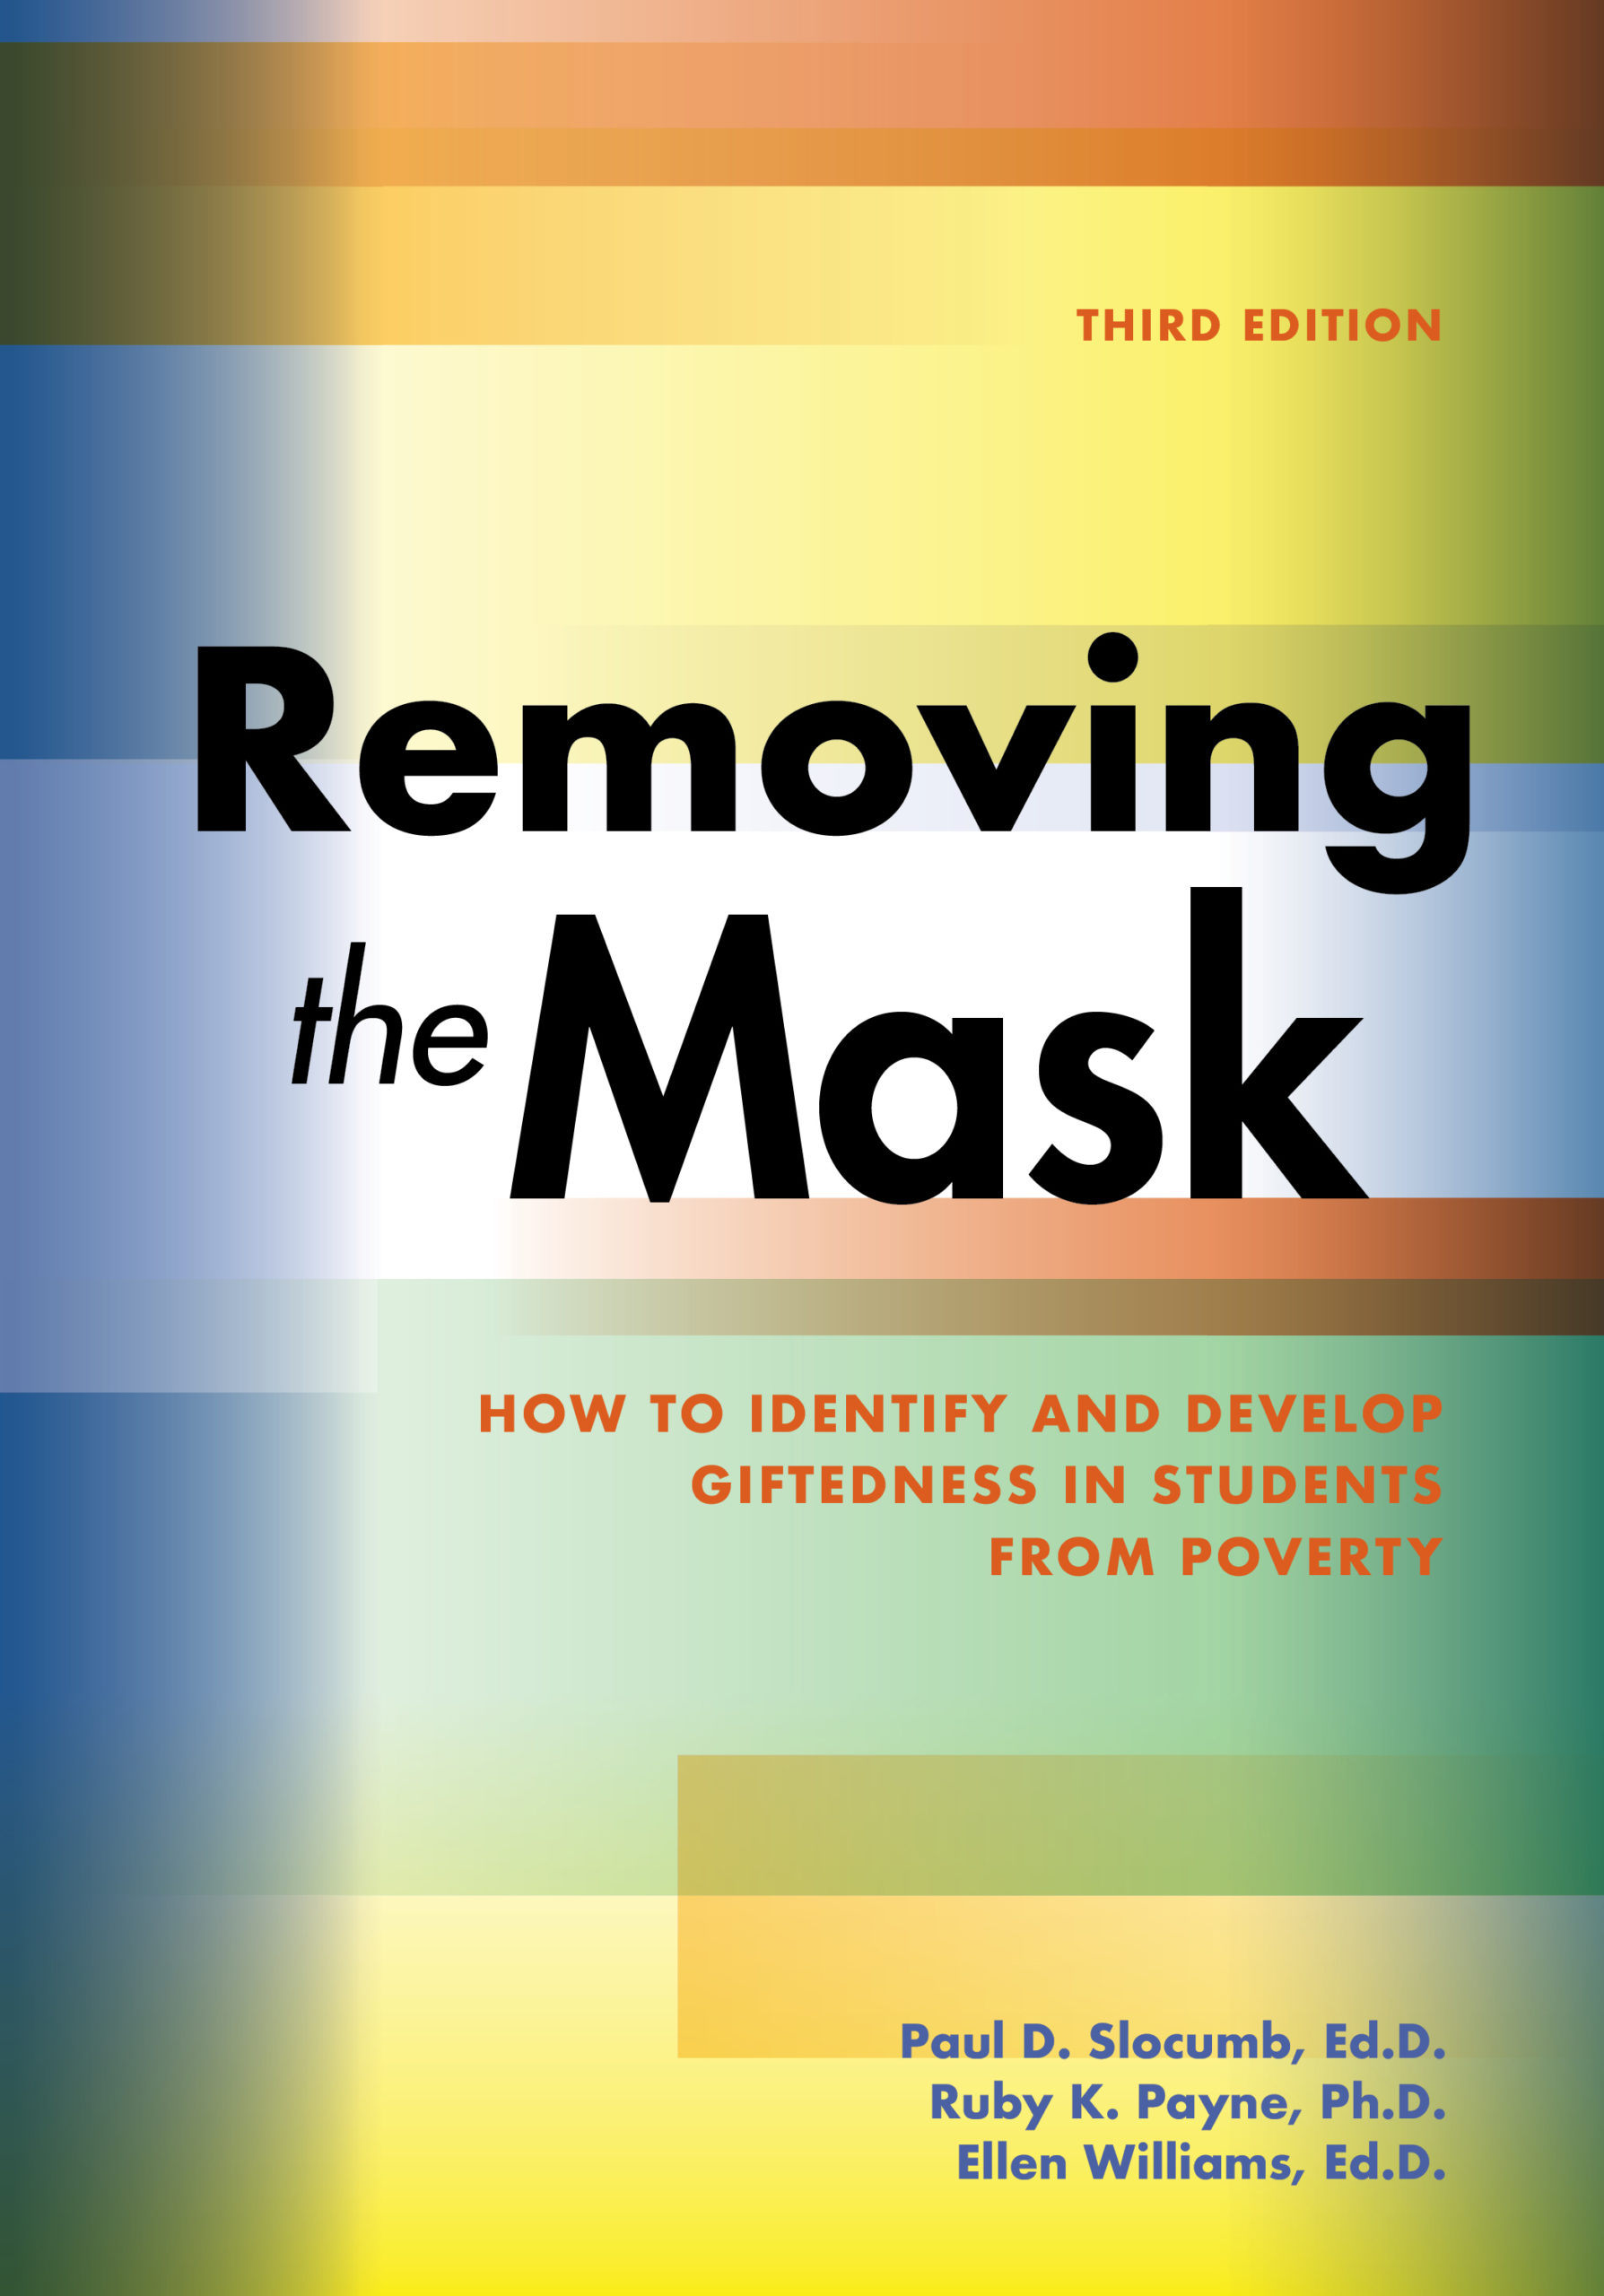 Removing the Mask: How to Identify and Develop Giftedness in Students from Poverty - Book